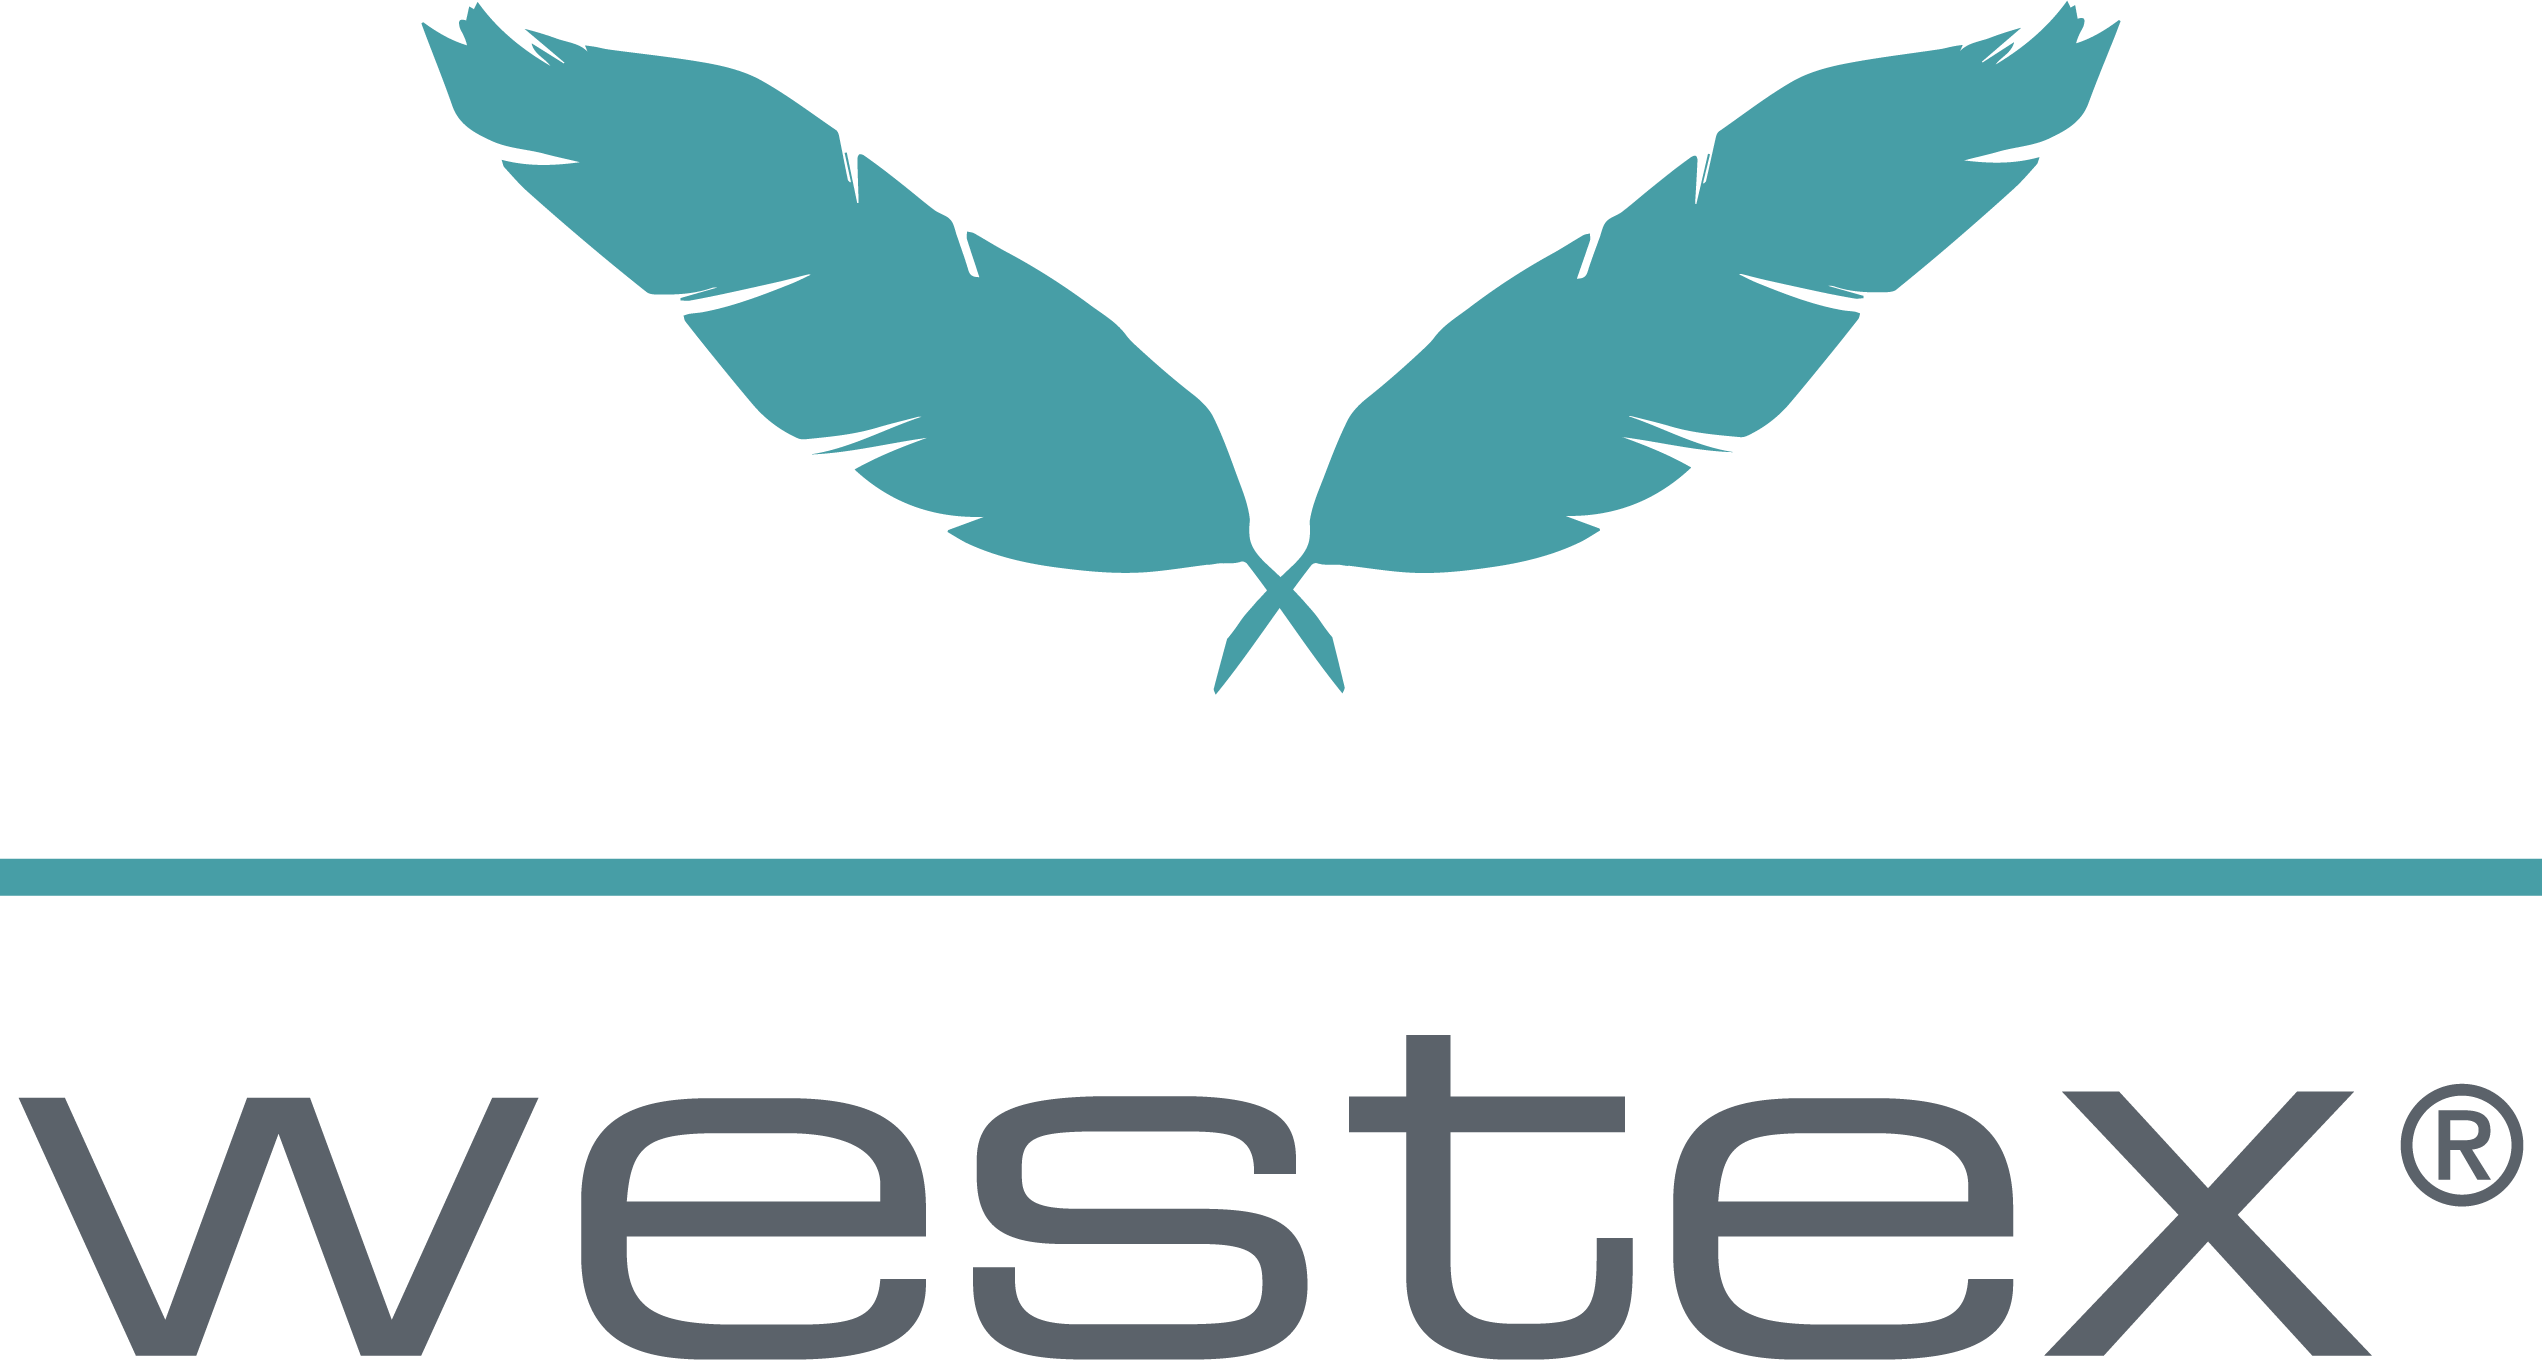 Westex is a Canadian manufacturer of bedding and home fashion products based in Ontario, Canada.